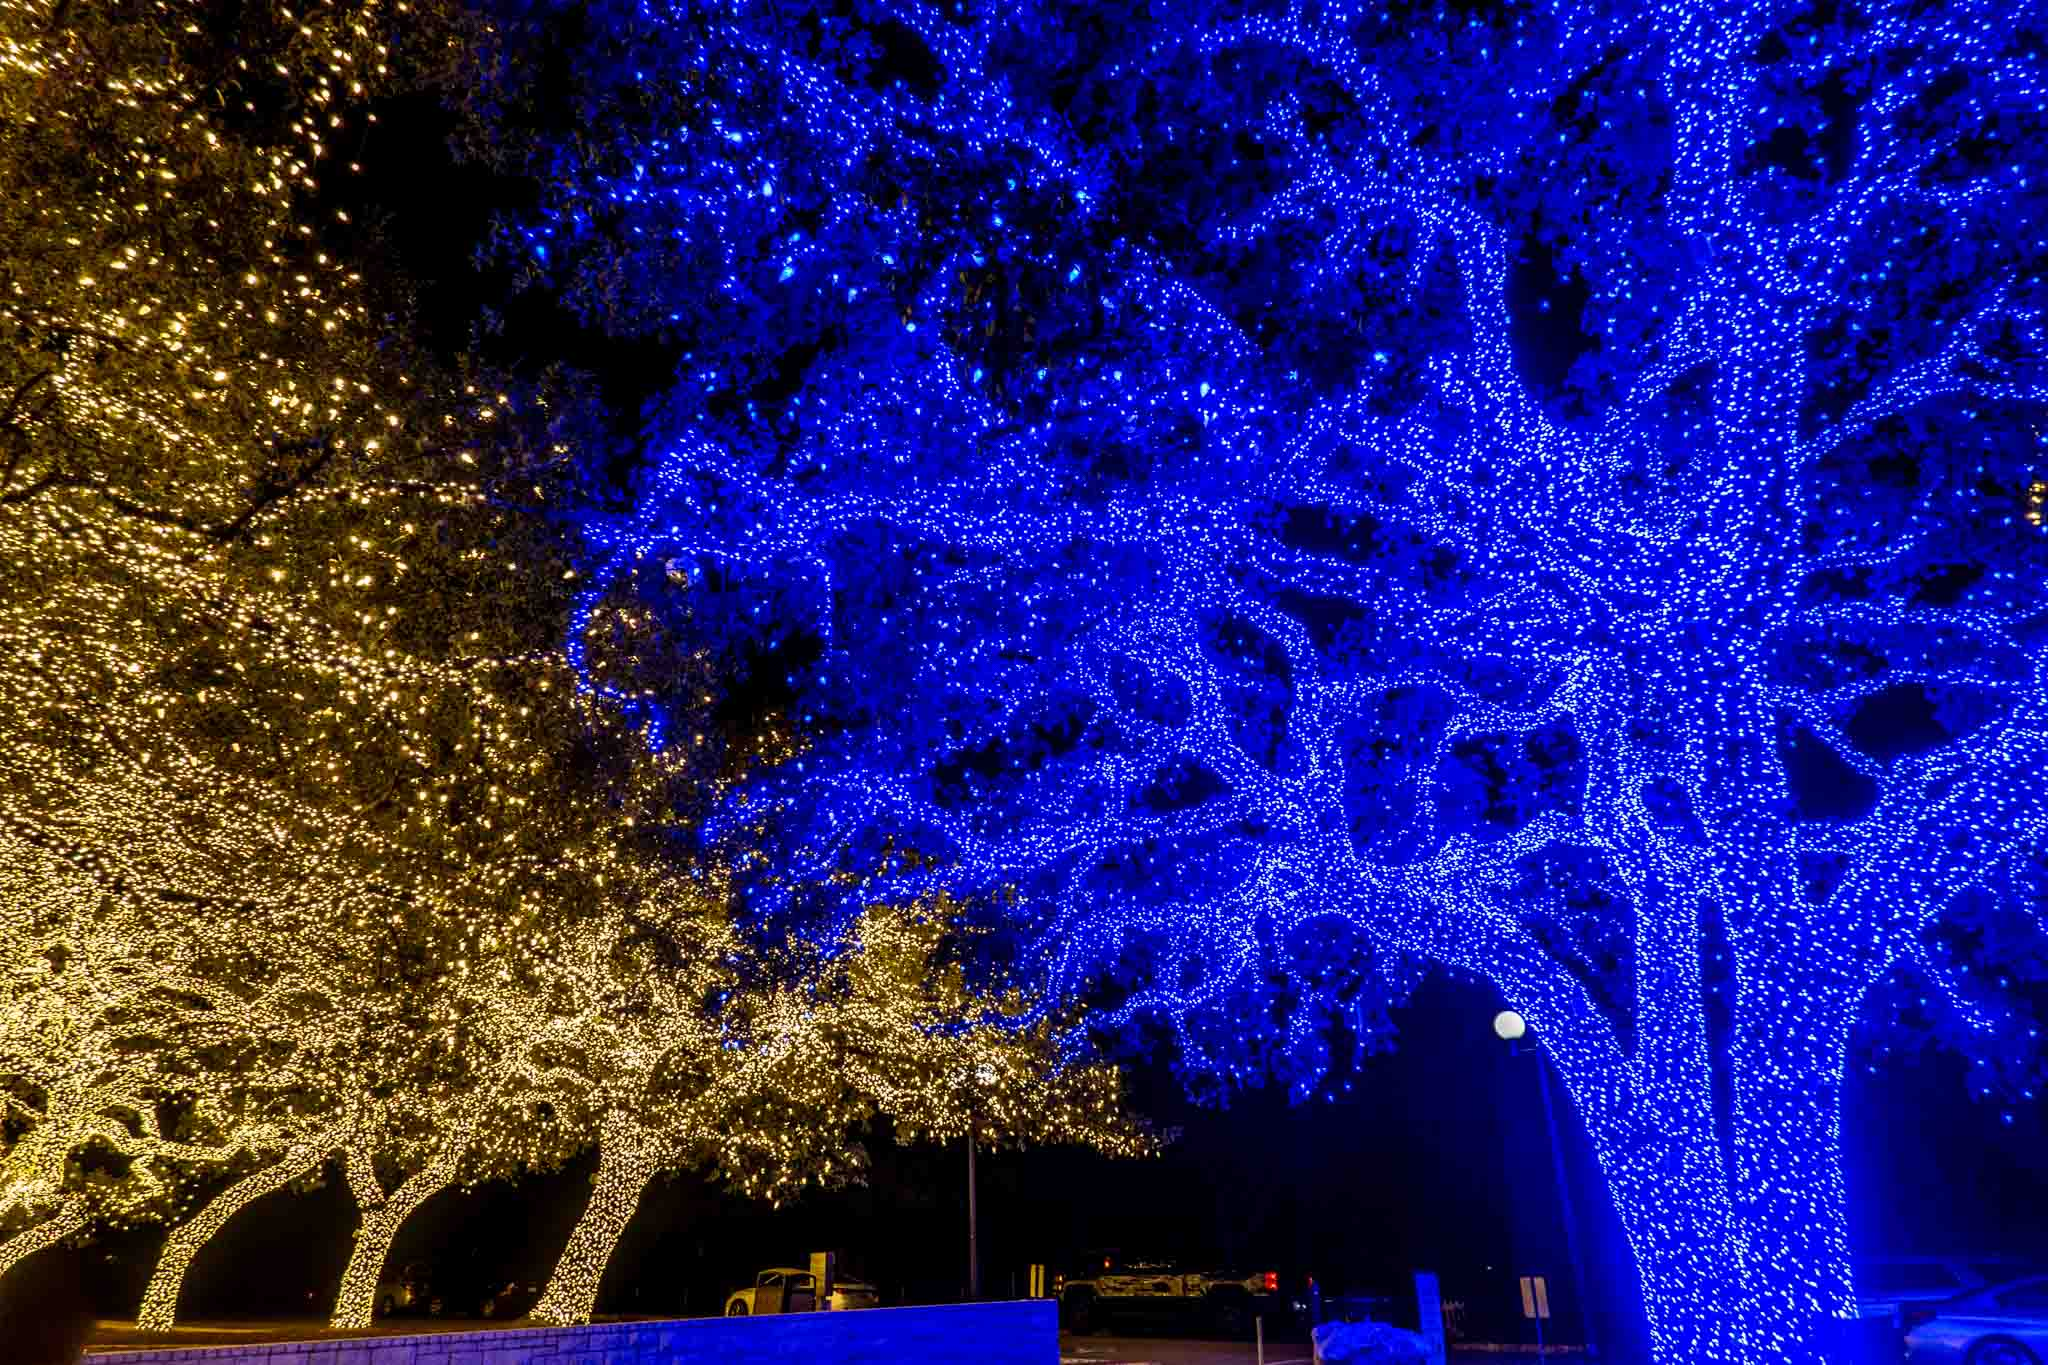 Trees completely covered in white lights beside trees completely covered in blue Christmas lights at night